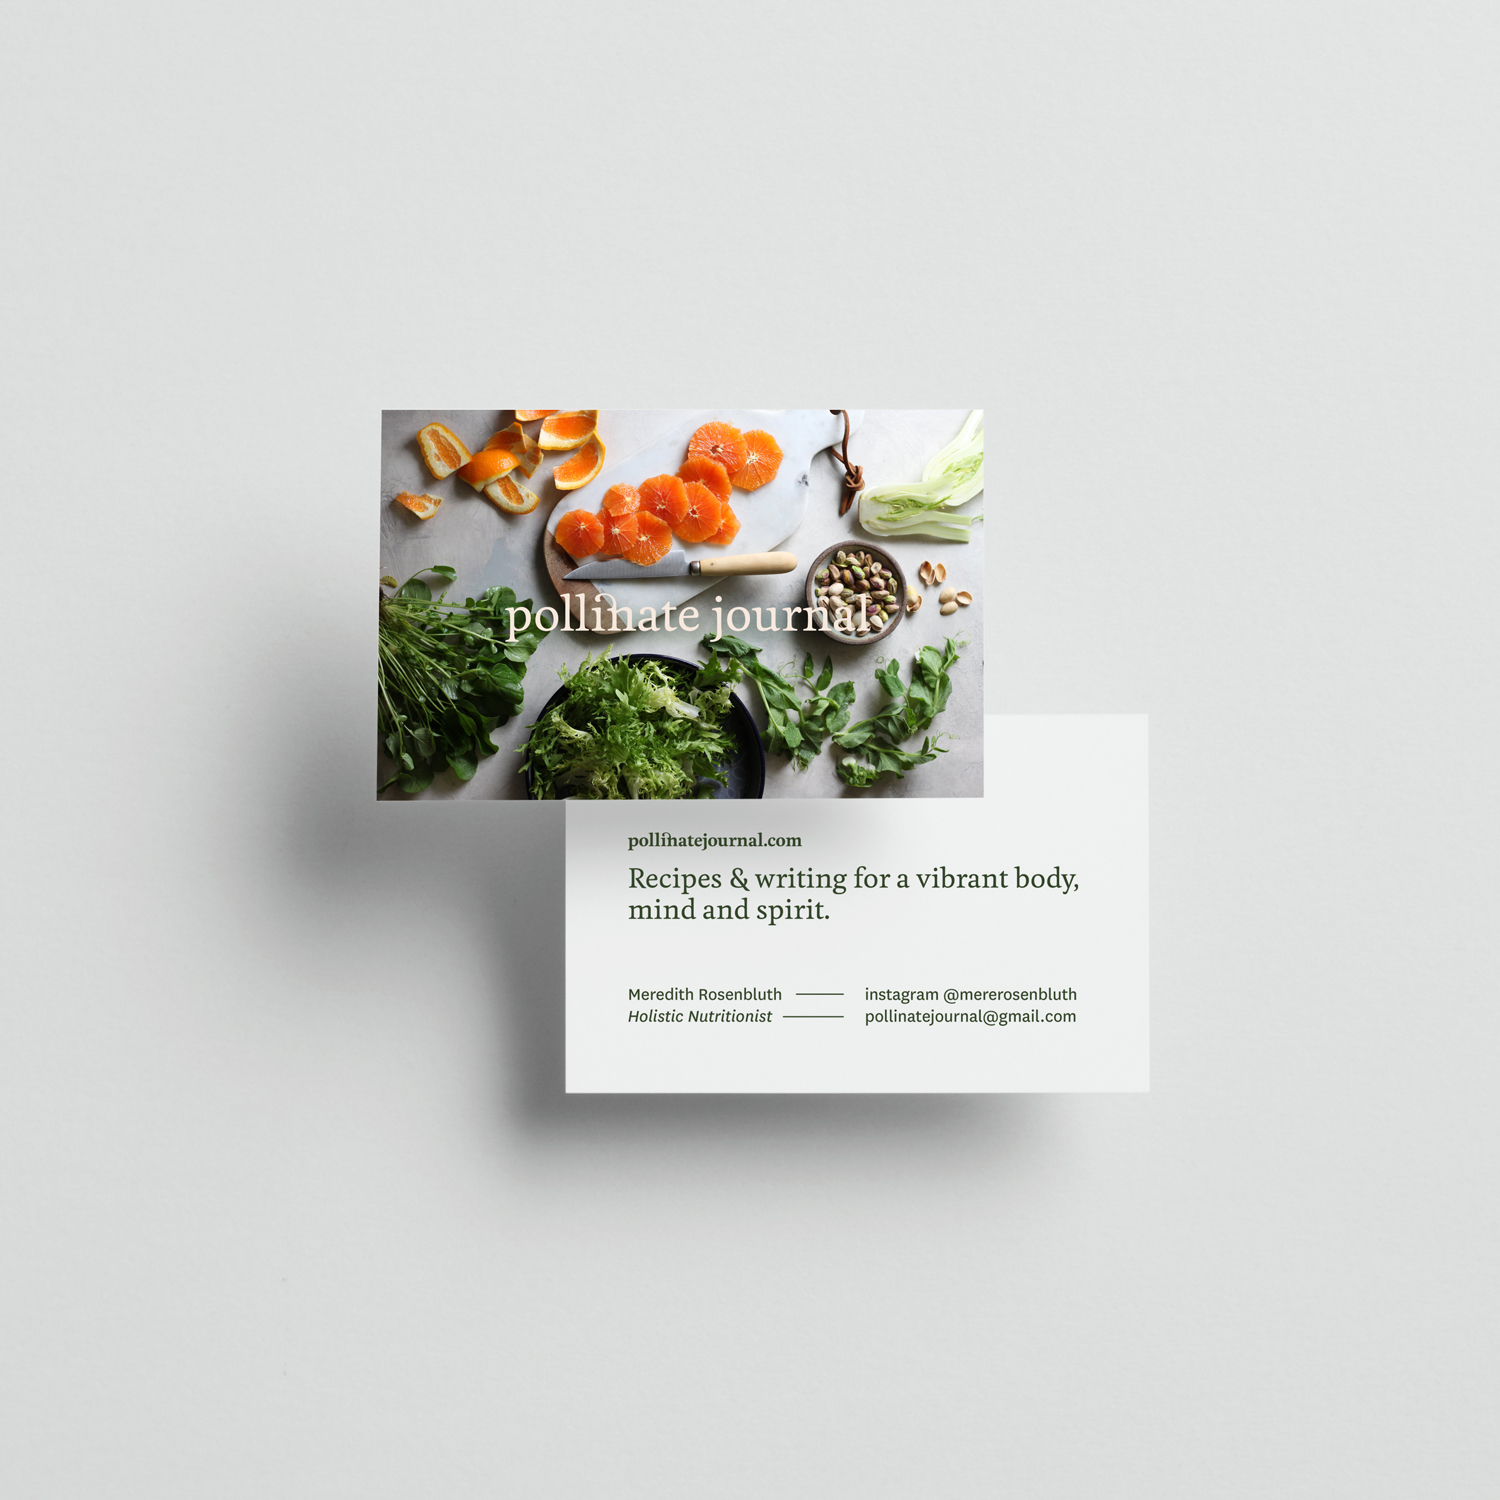 pollinate-journal-business-card